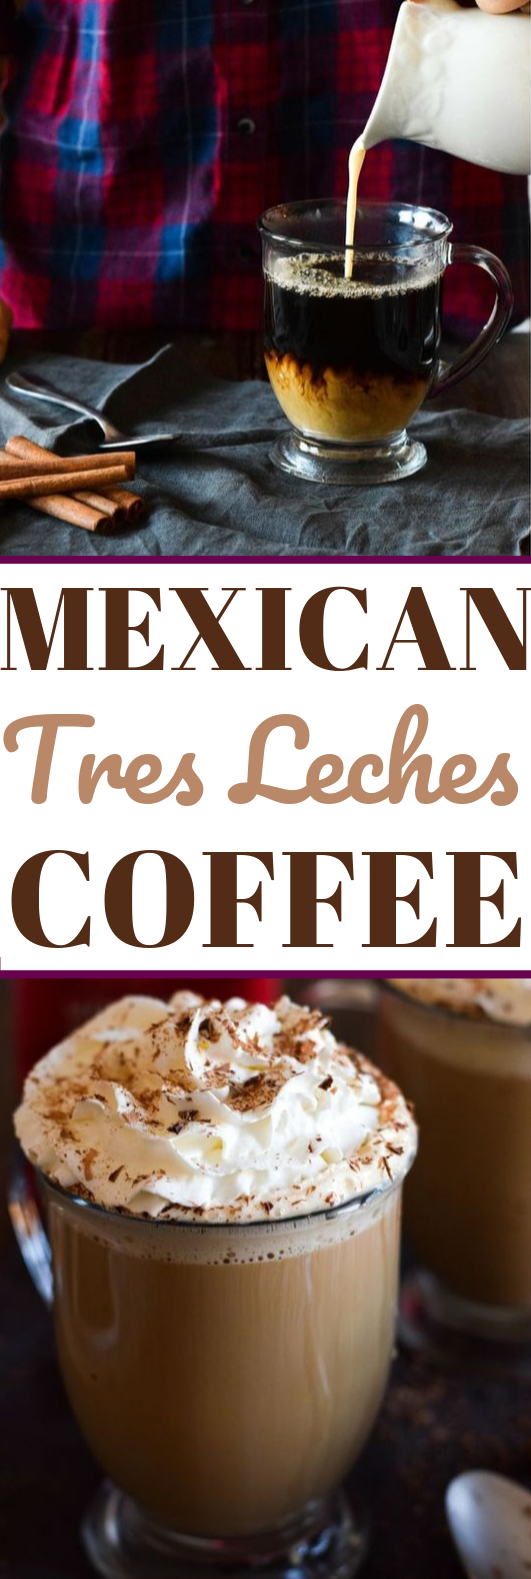 Mexican Tres Leches Coffee #drinks #coffee